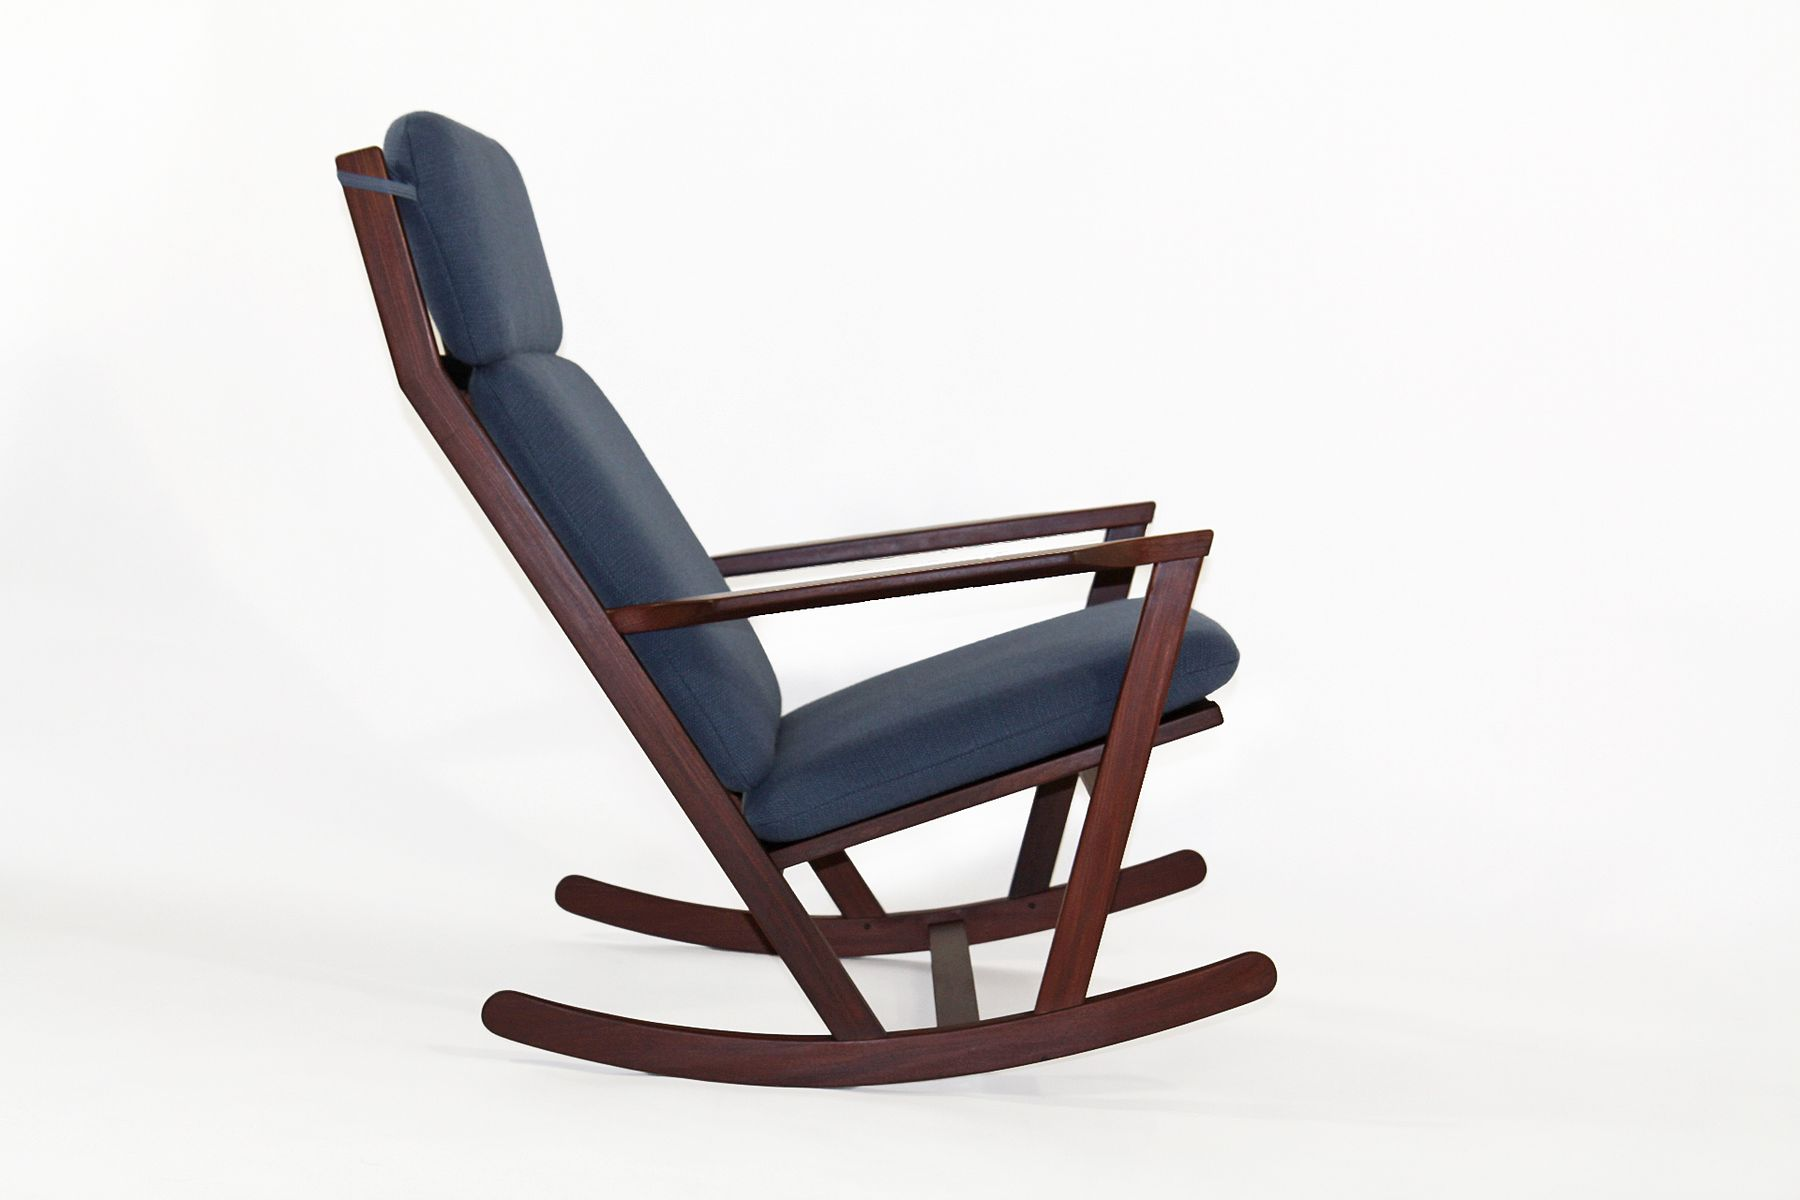 Wonderful image of Rocking Chair by Poul M. Volther for Frem Røjle for sale at Pamono with #5F3D3C color and 1800x1200 pixels